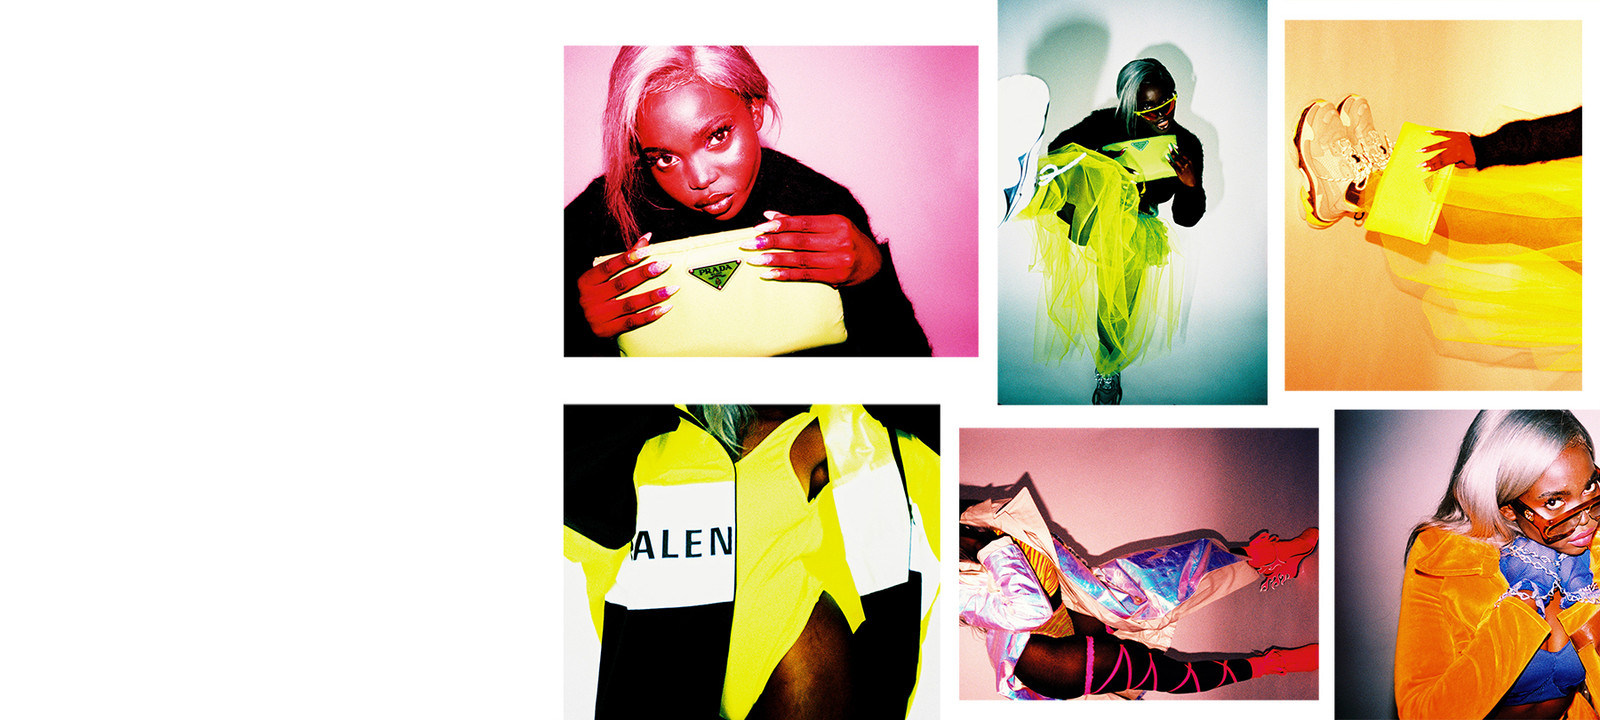 Neon Color Trend Fall Winter 2018 Editorial Prada Clutch Flame Sweater Balenciaga Triple S Sneakers Tulle Skirt Black Model Silver Hair Kenza